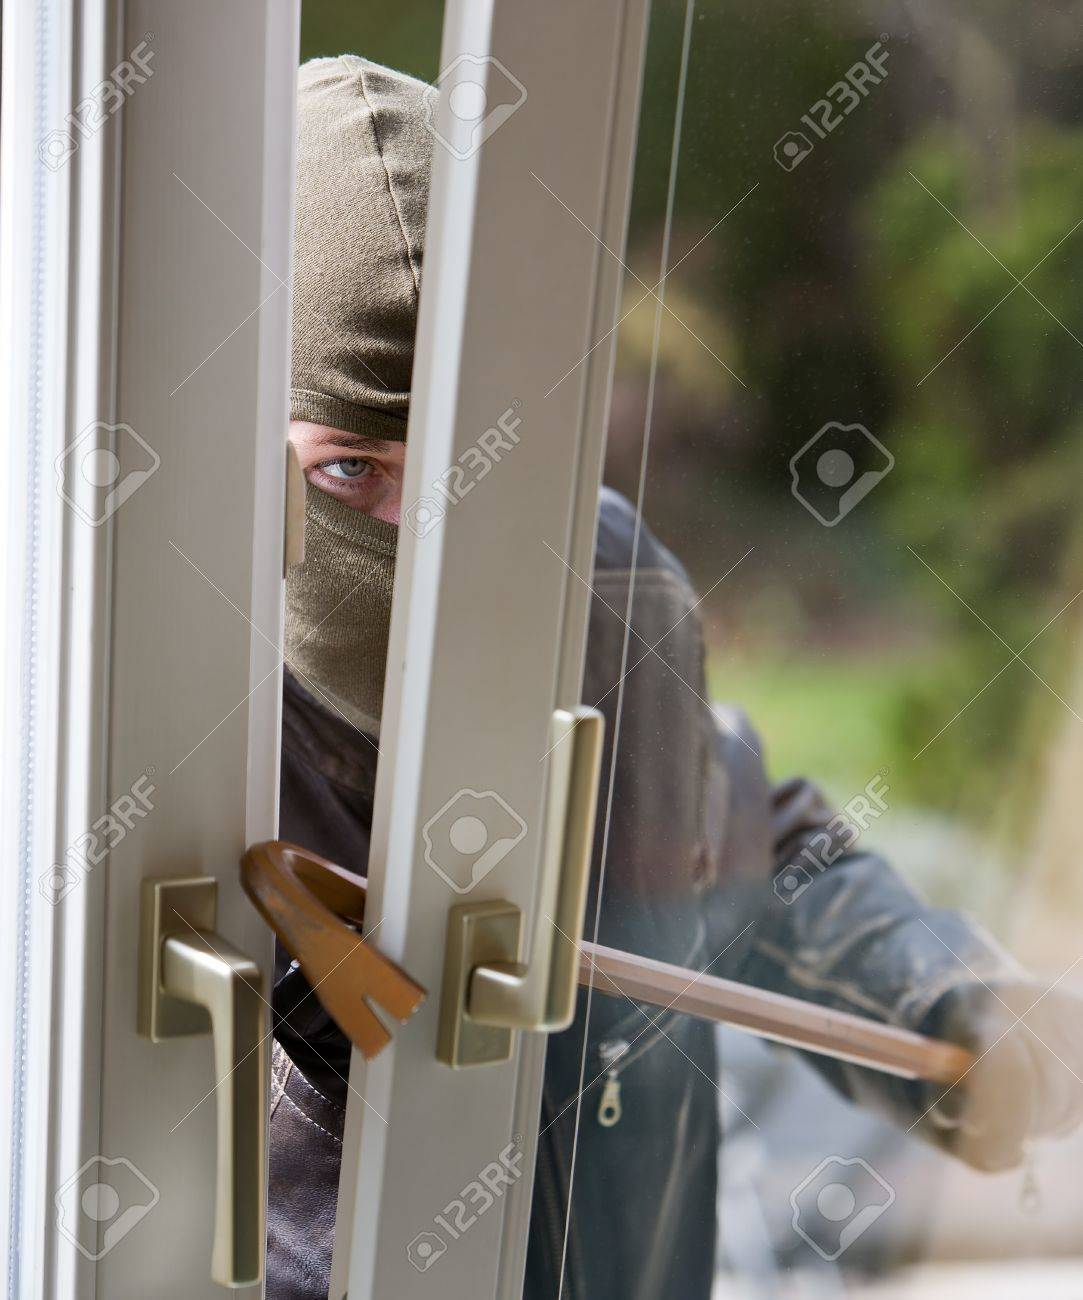 A burglar at a window of a house. Stock Photo - 7993673